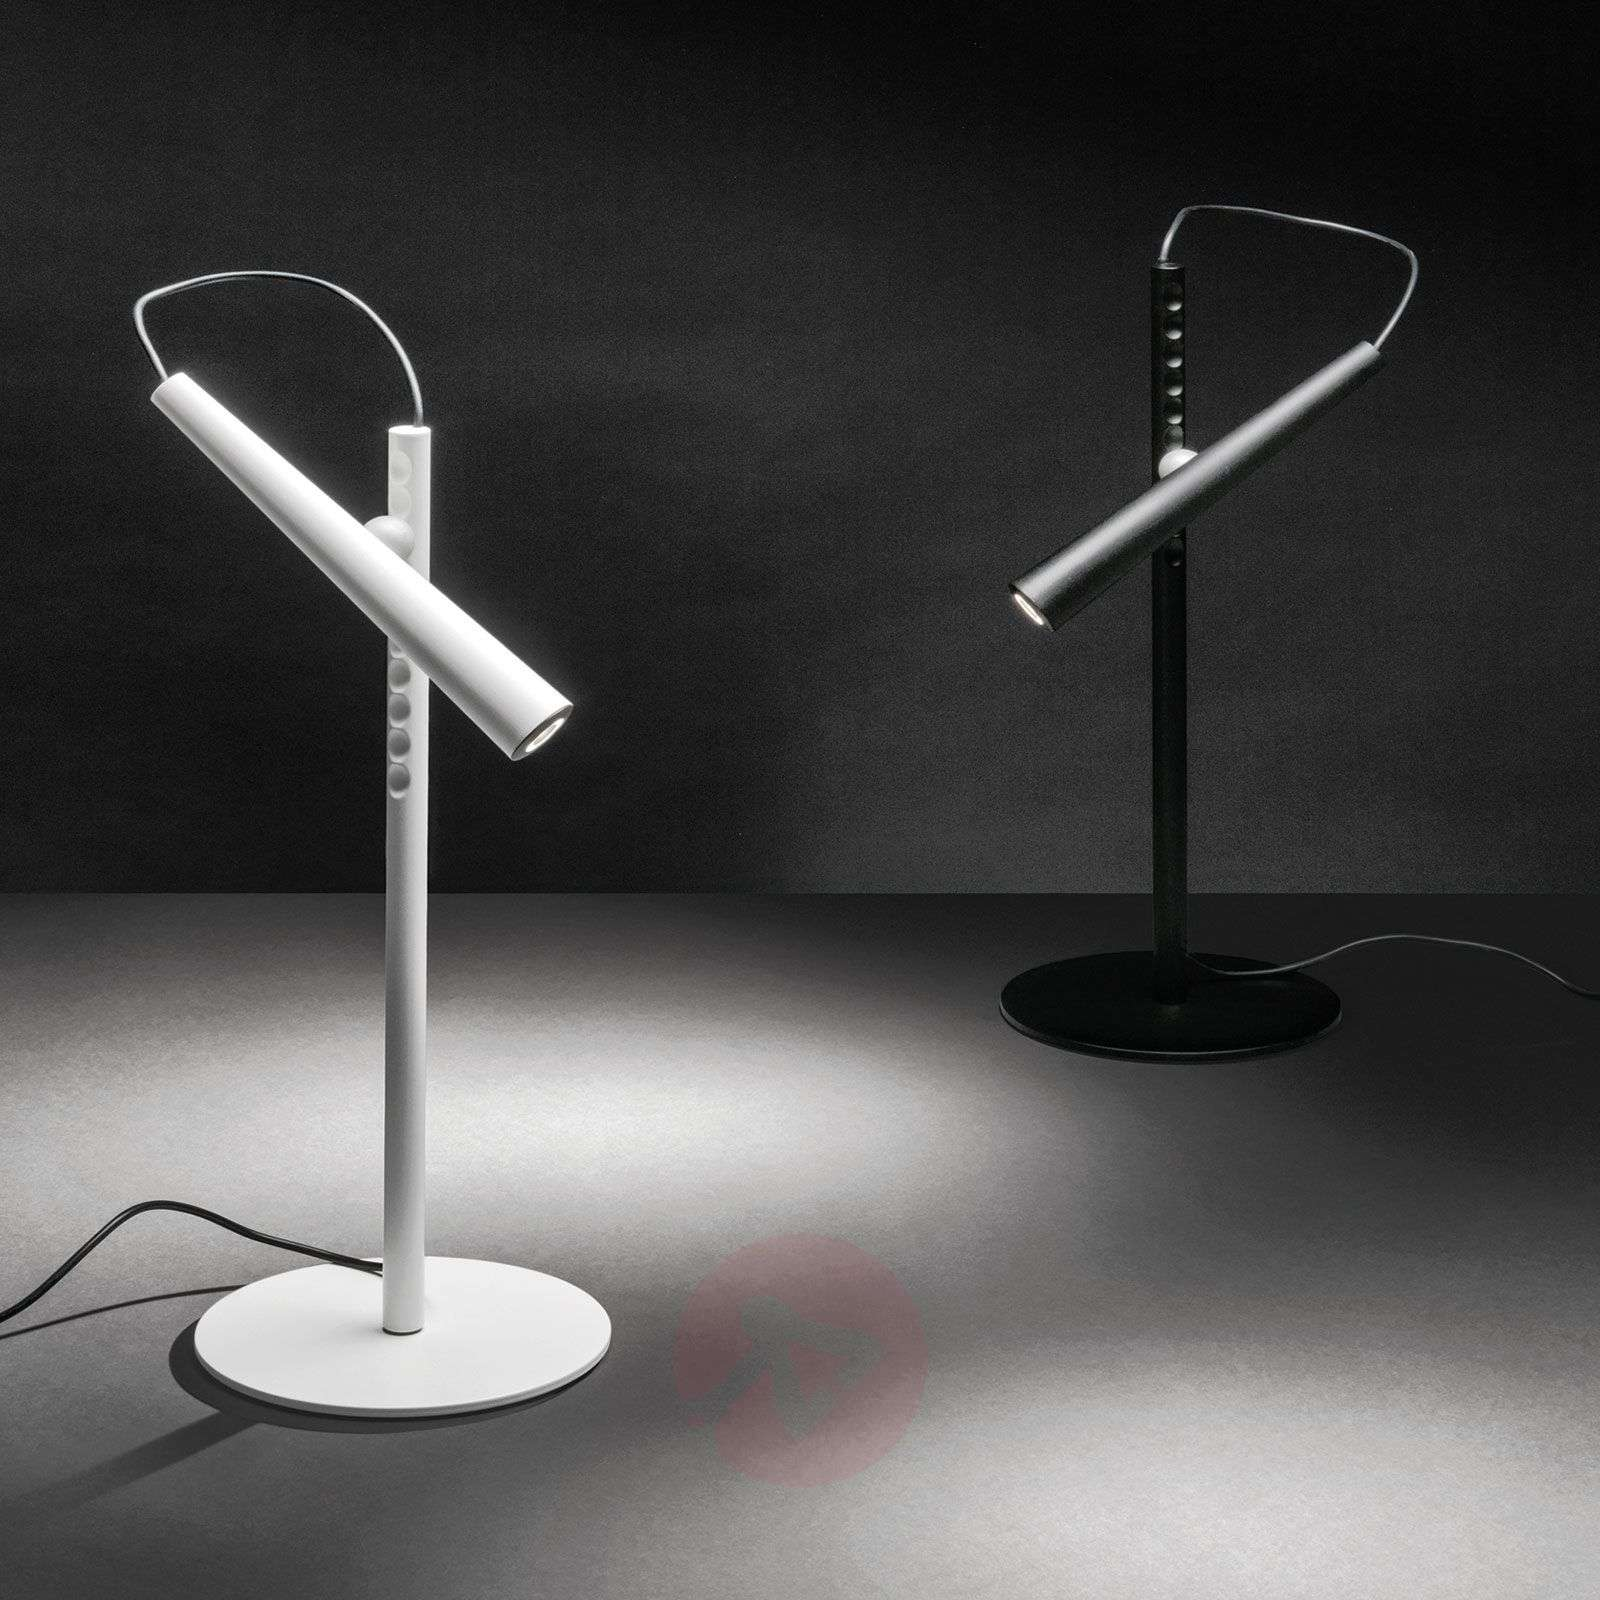 Foscarini Magneto LED tafellamp, wit-3560034-01